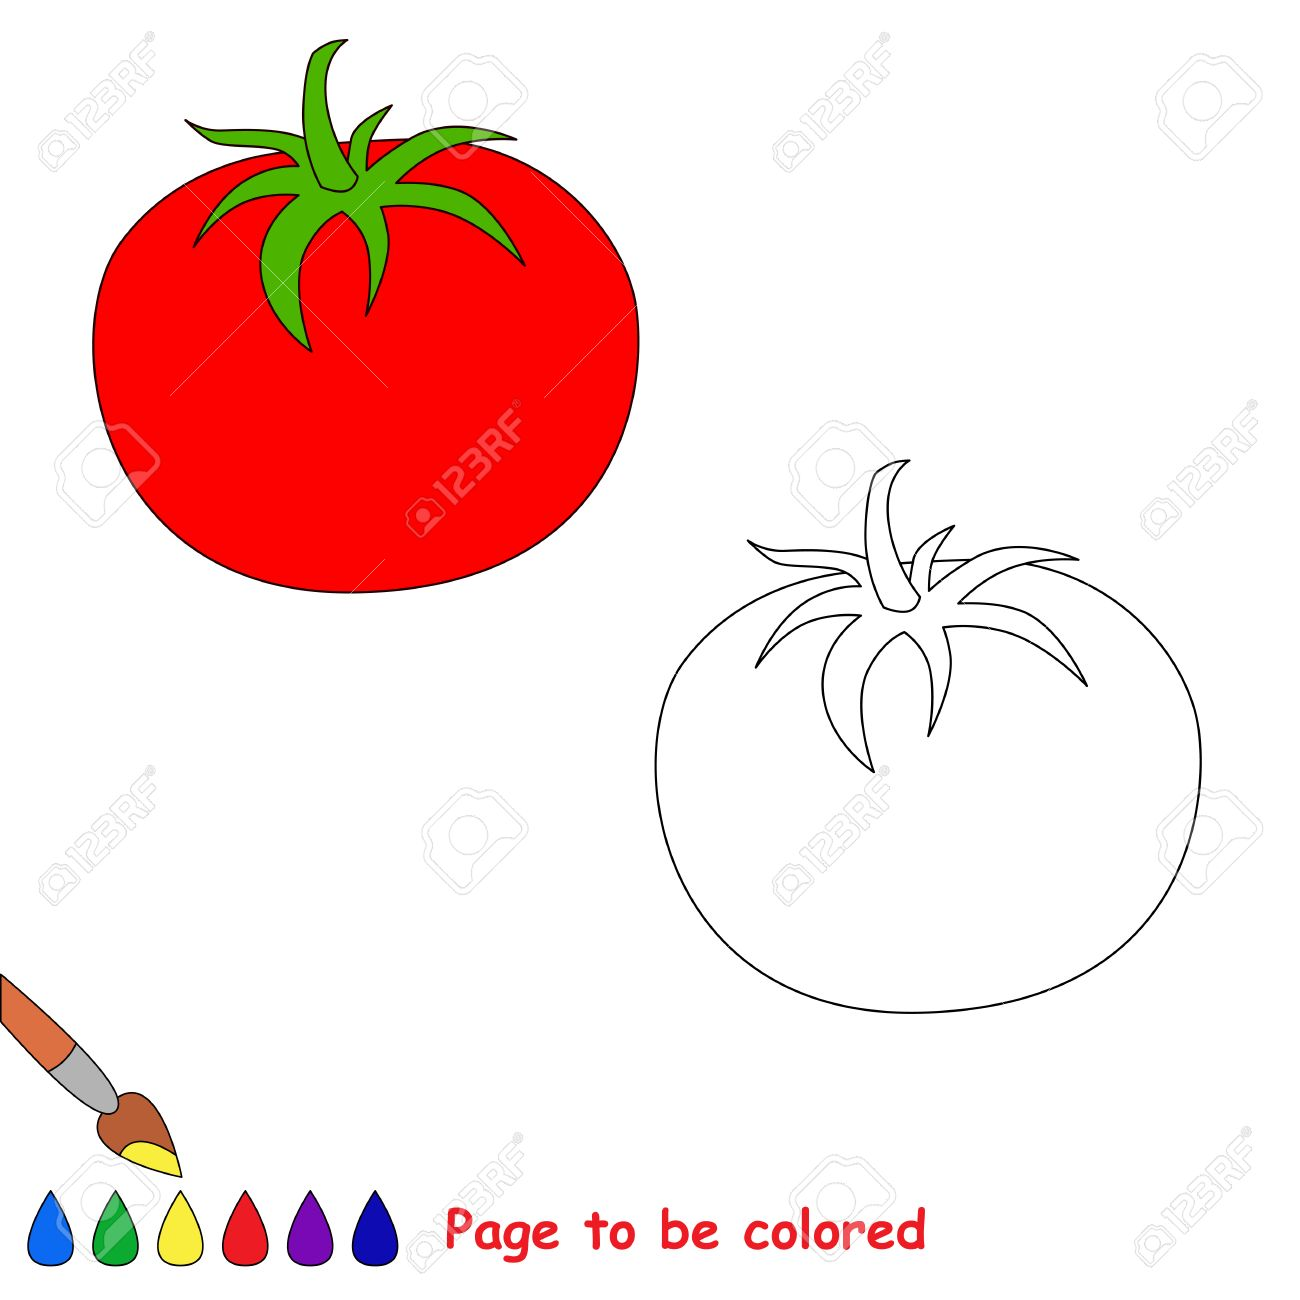 Cartoon Tomato To Be Colored. Coloring Book For Children. Royalty ...